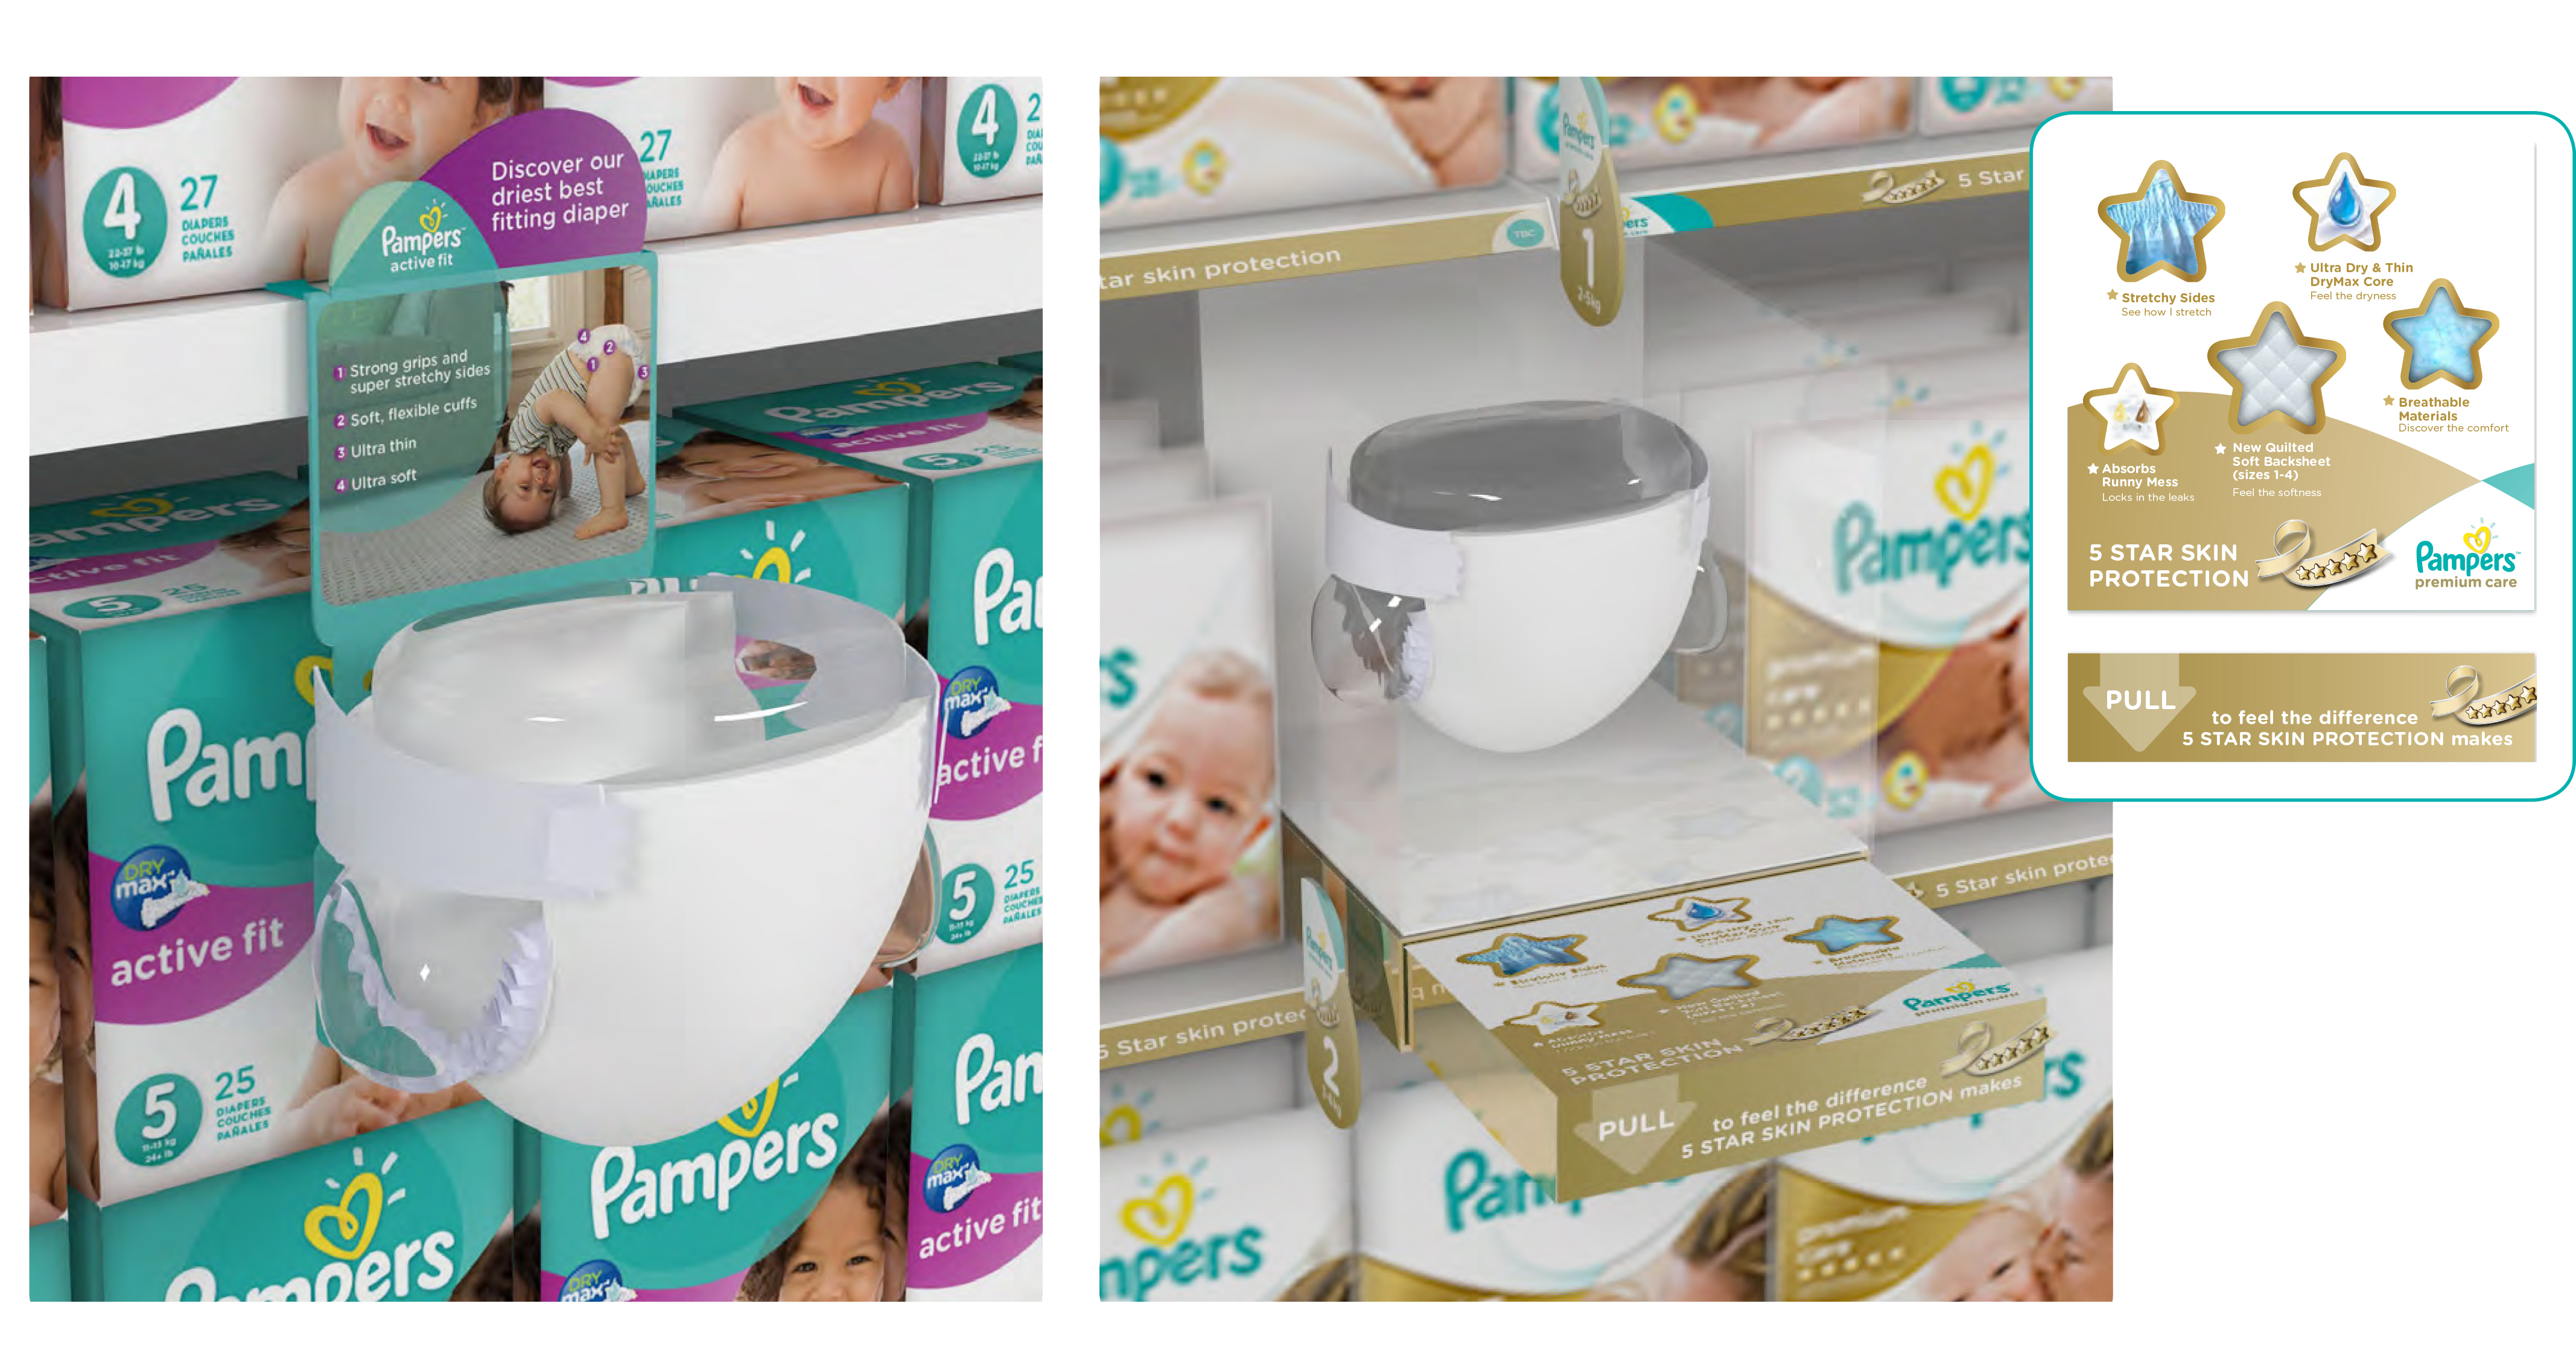 Pampers_5